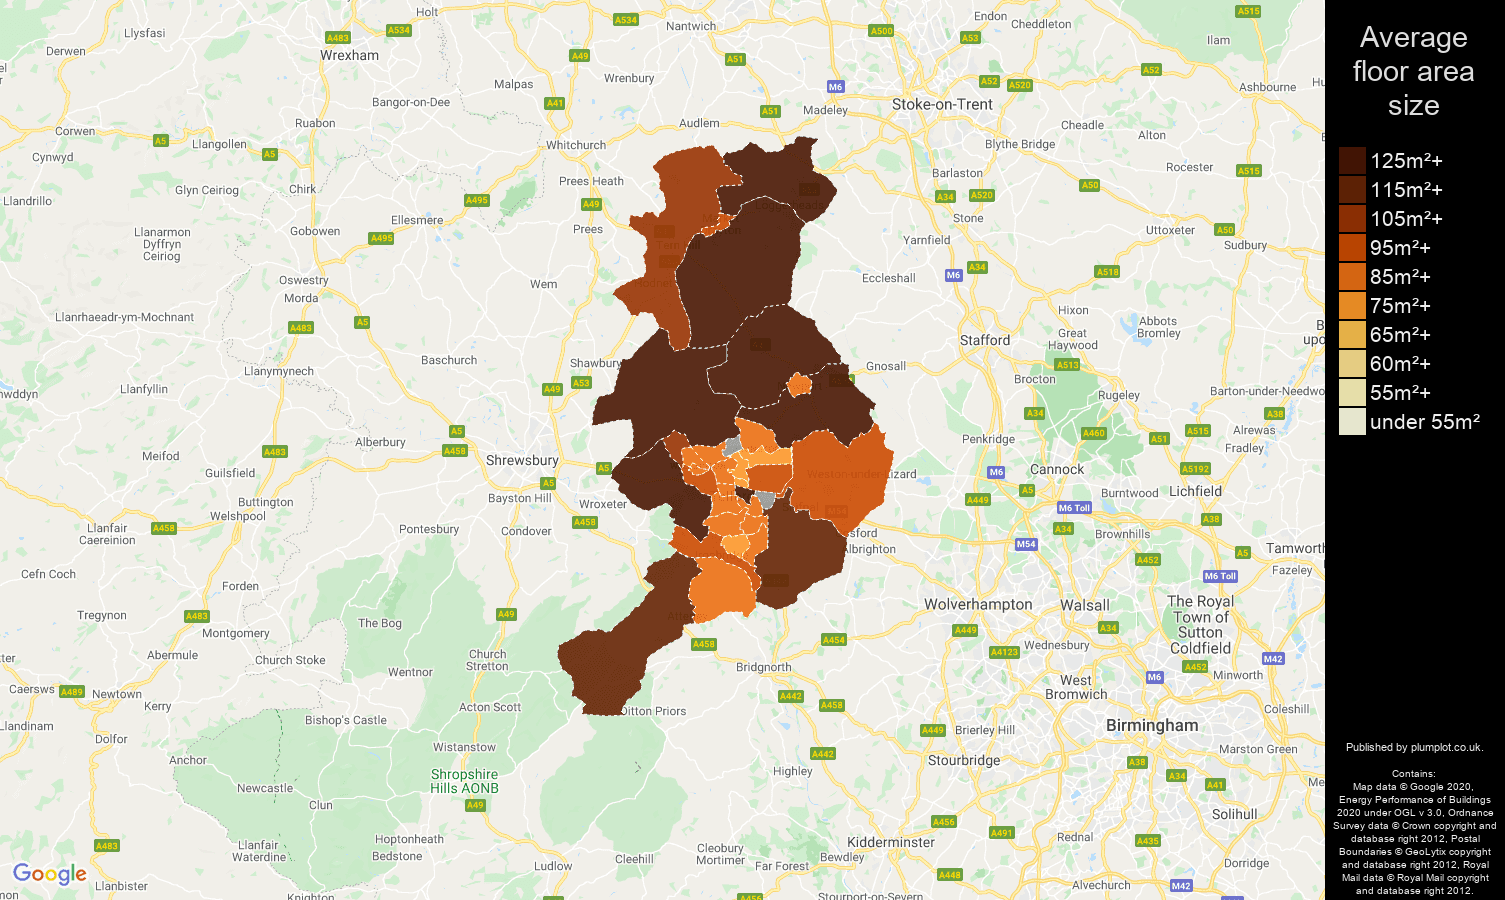 Telford map of average floor area size of houses